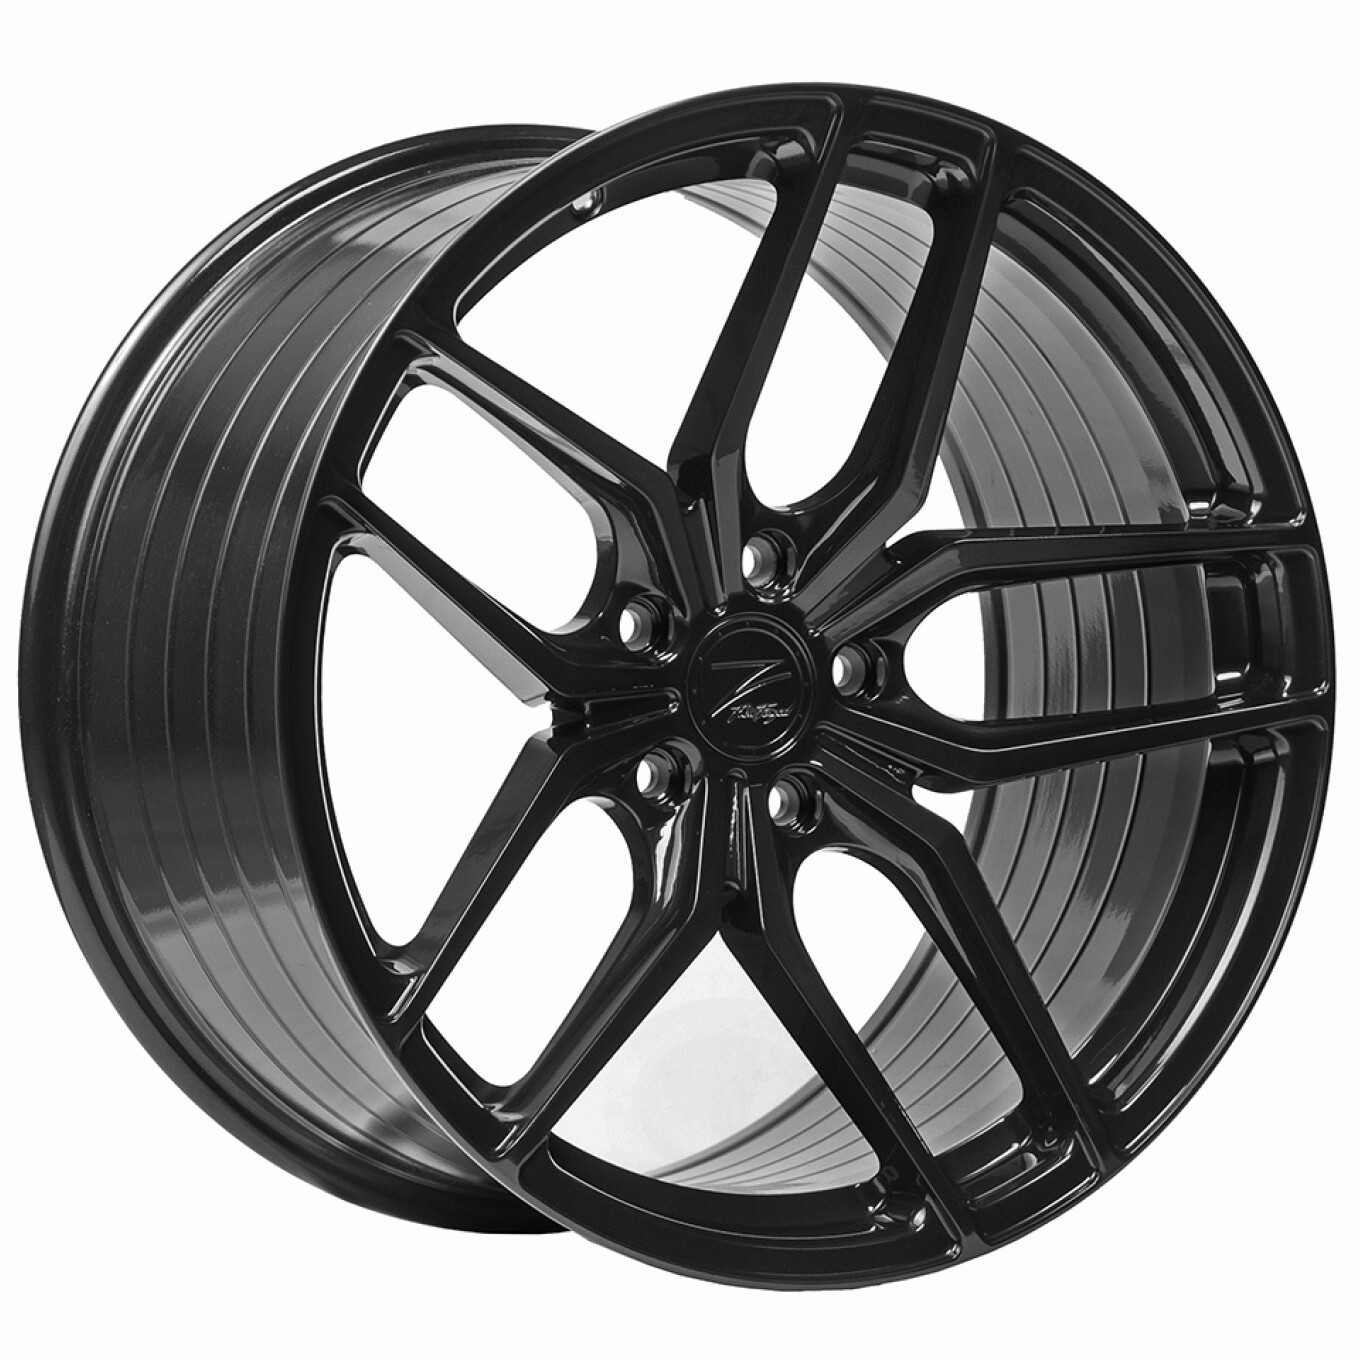 Z-Performance ZP2.1 10,5x20 ET42 5x112 FlowForged Gloss Black